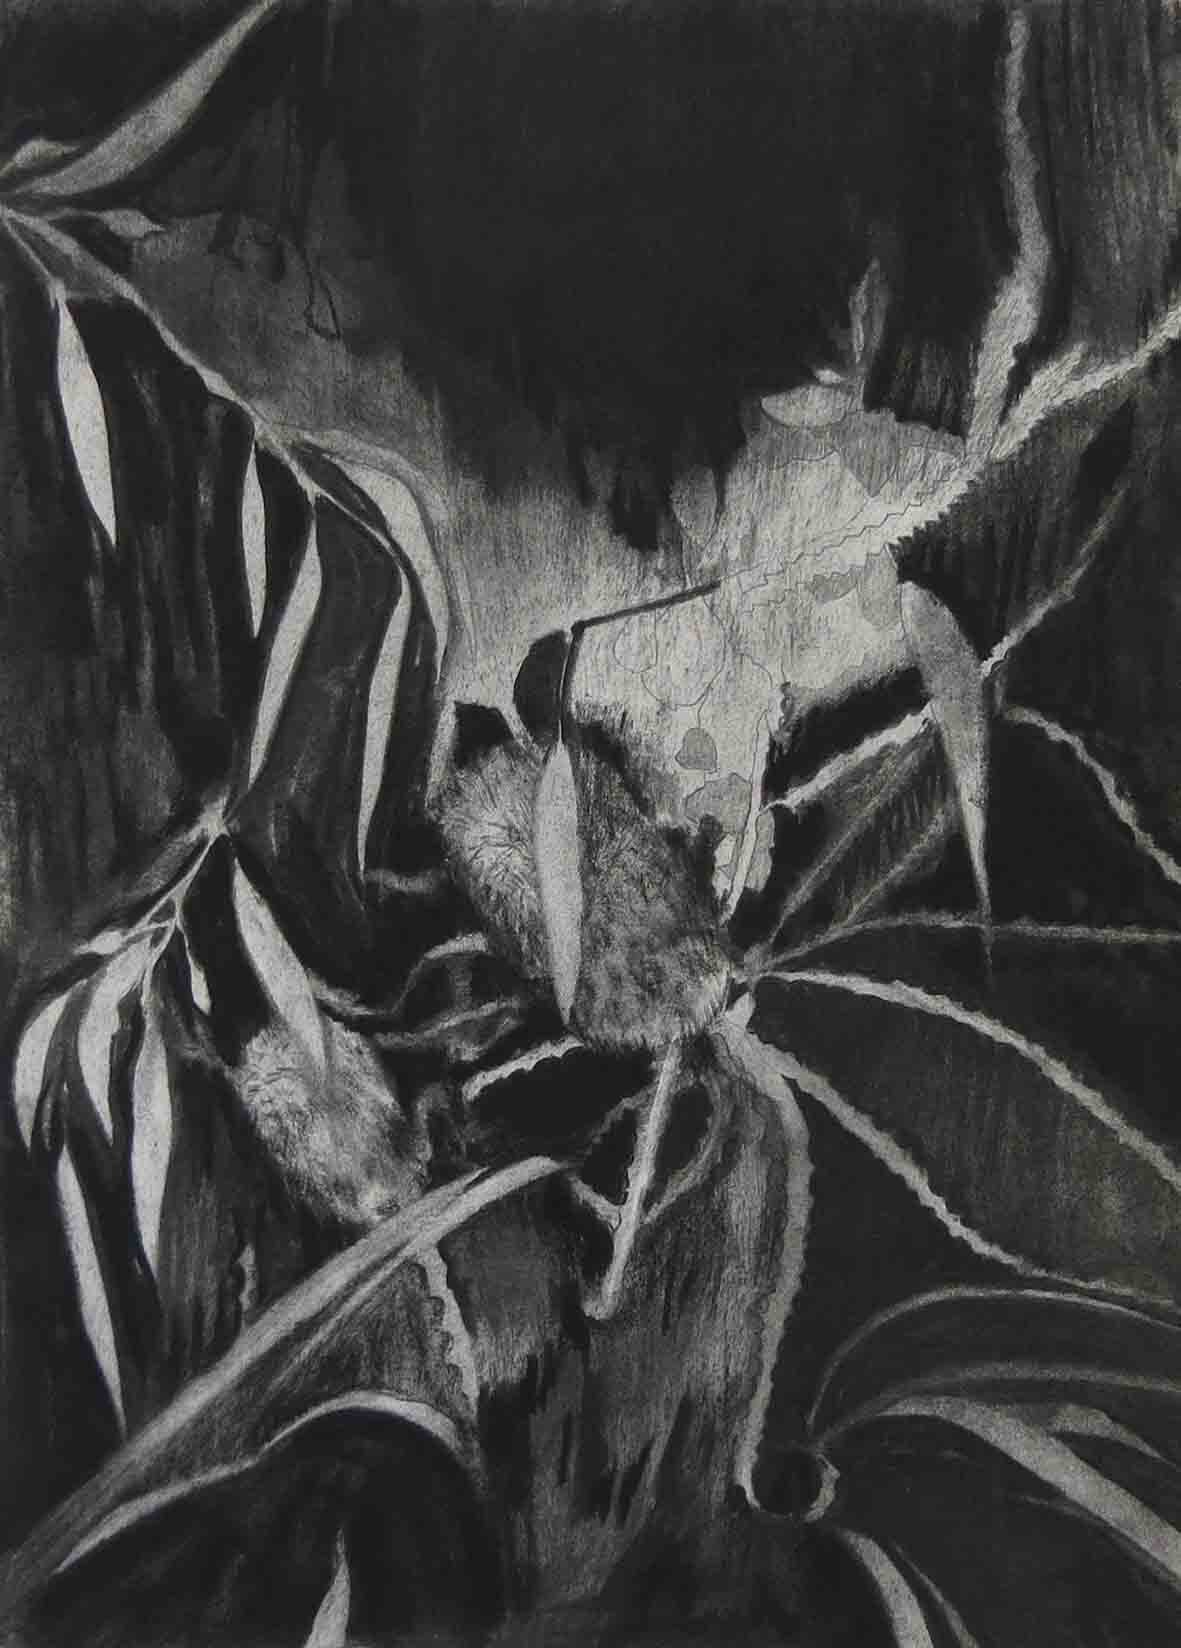 11. Fiona Harman, Banksia, 2019, charcoal, graphite and ink on paper, 42 x 29.5 cm $165